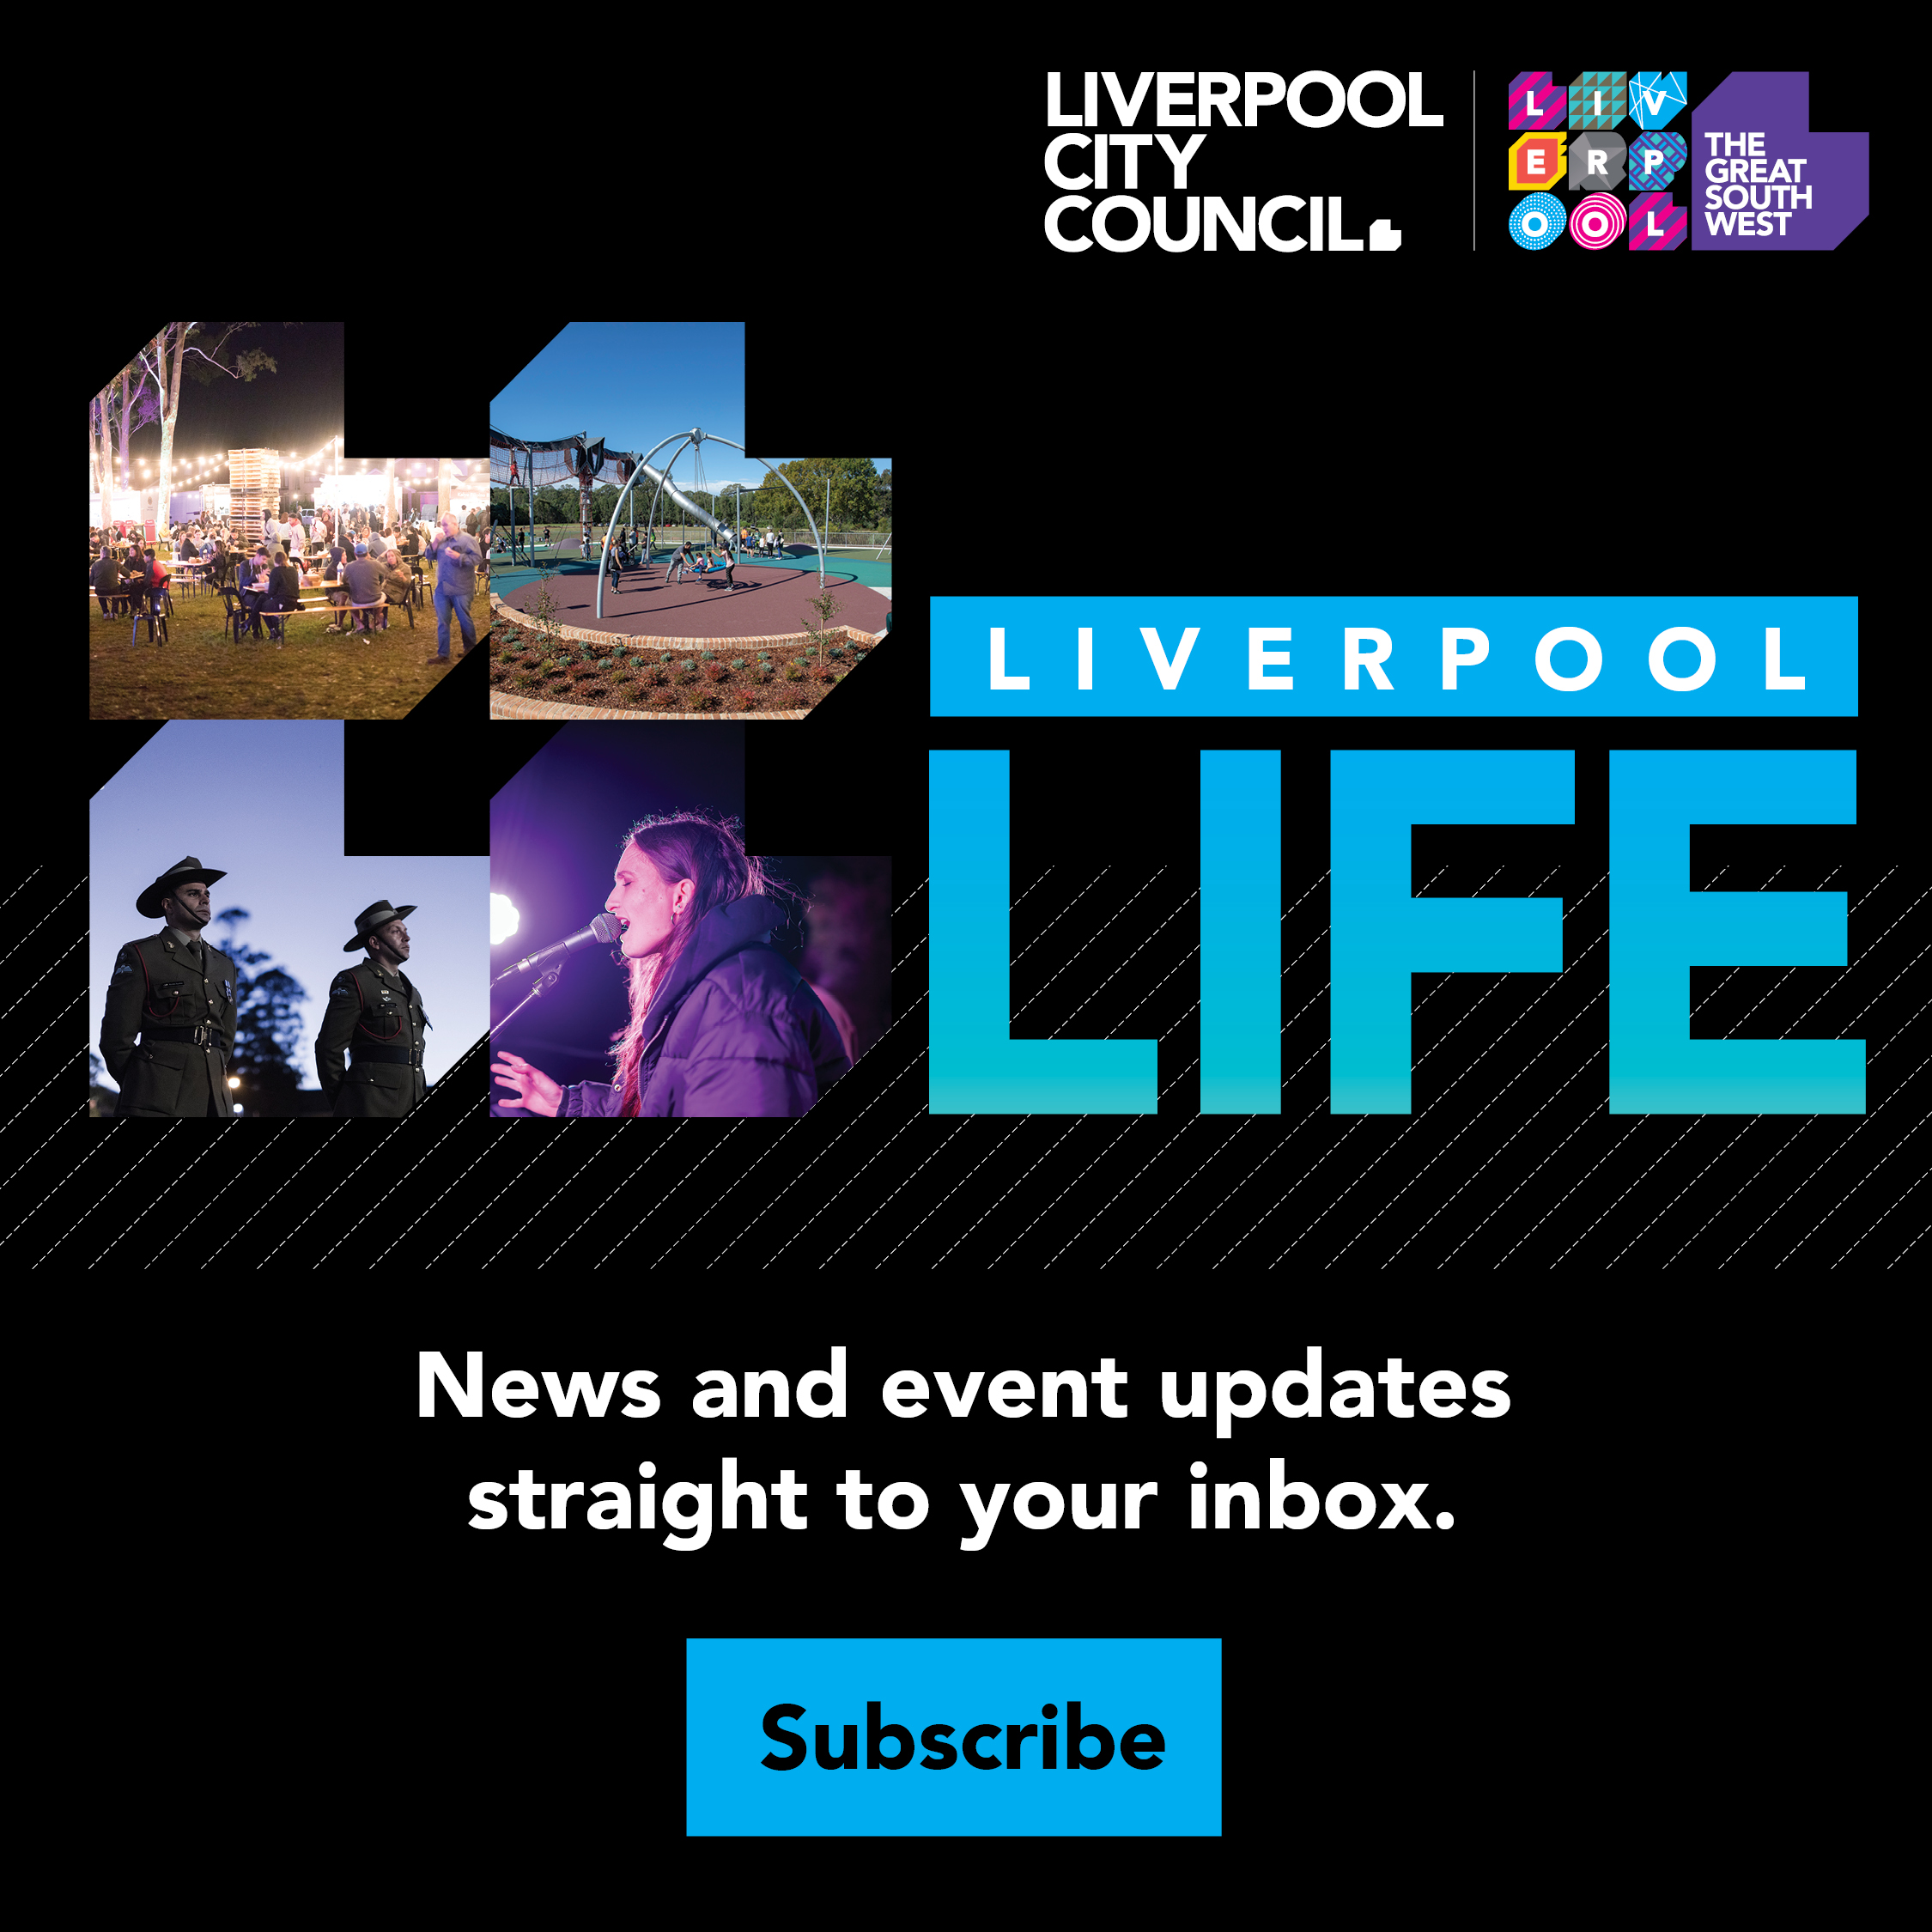 An image of a flier used to advertise Liverpool Life, a service that sends email updates straight to your email.